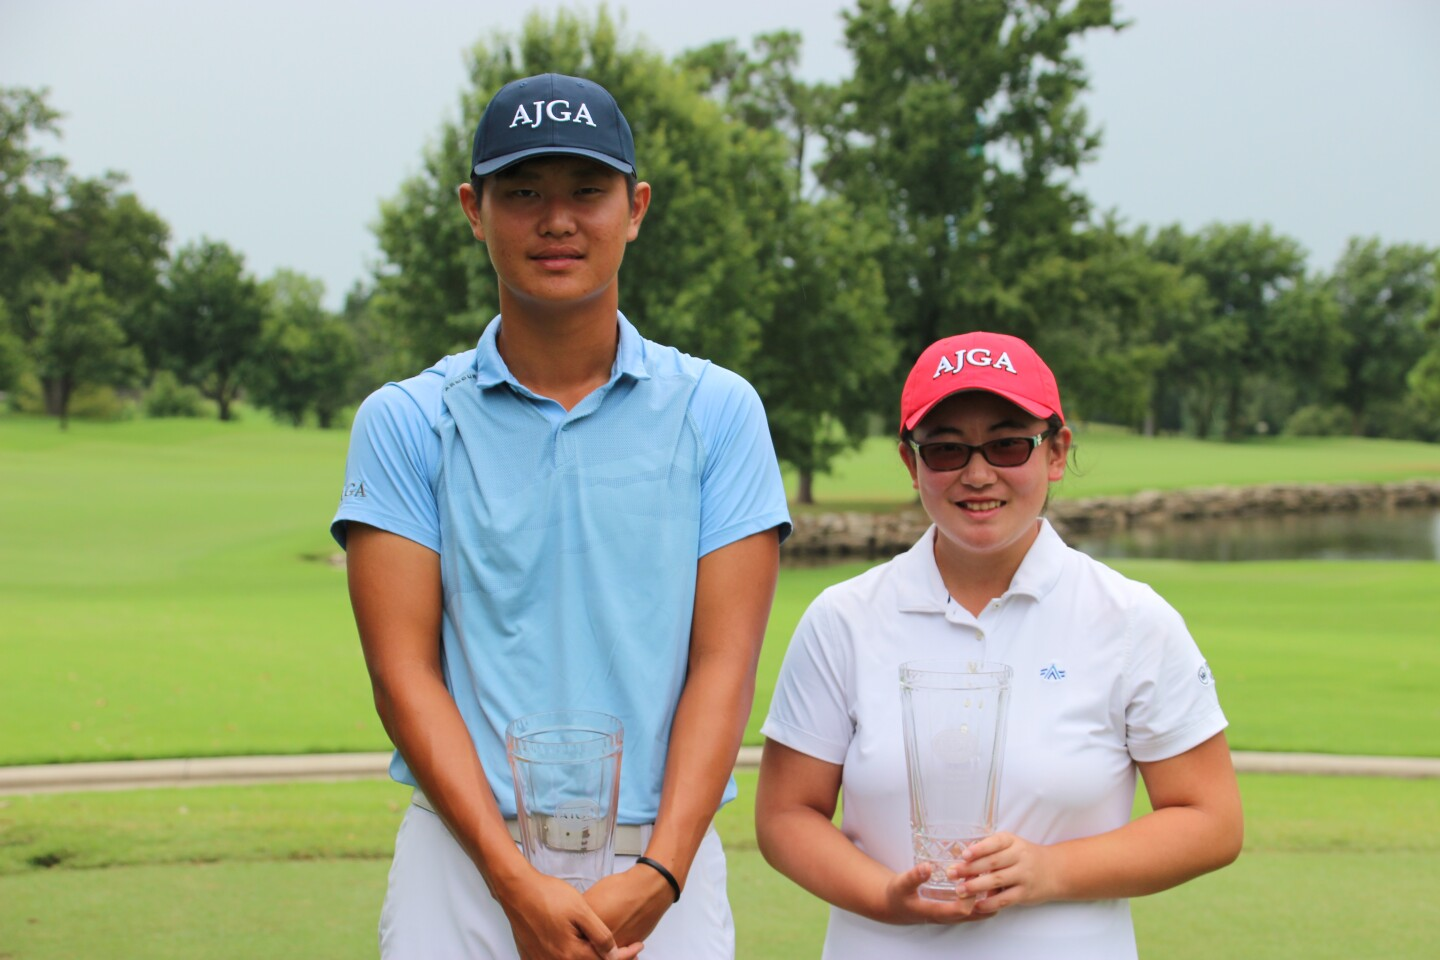 Hanseung Chang and Borina Sutikto winners in fairway with AJGA hat-2019-Gateway Mortgage Group Tulsa Junior.JPG